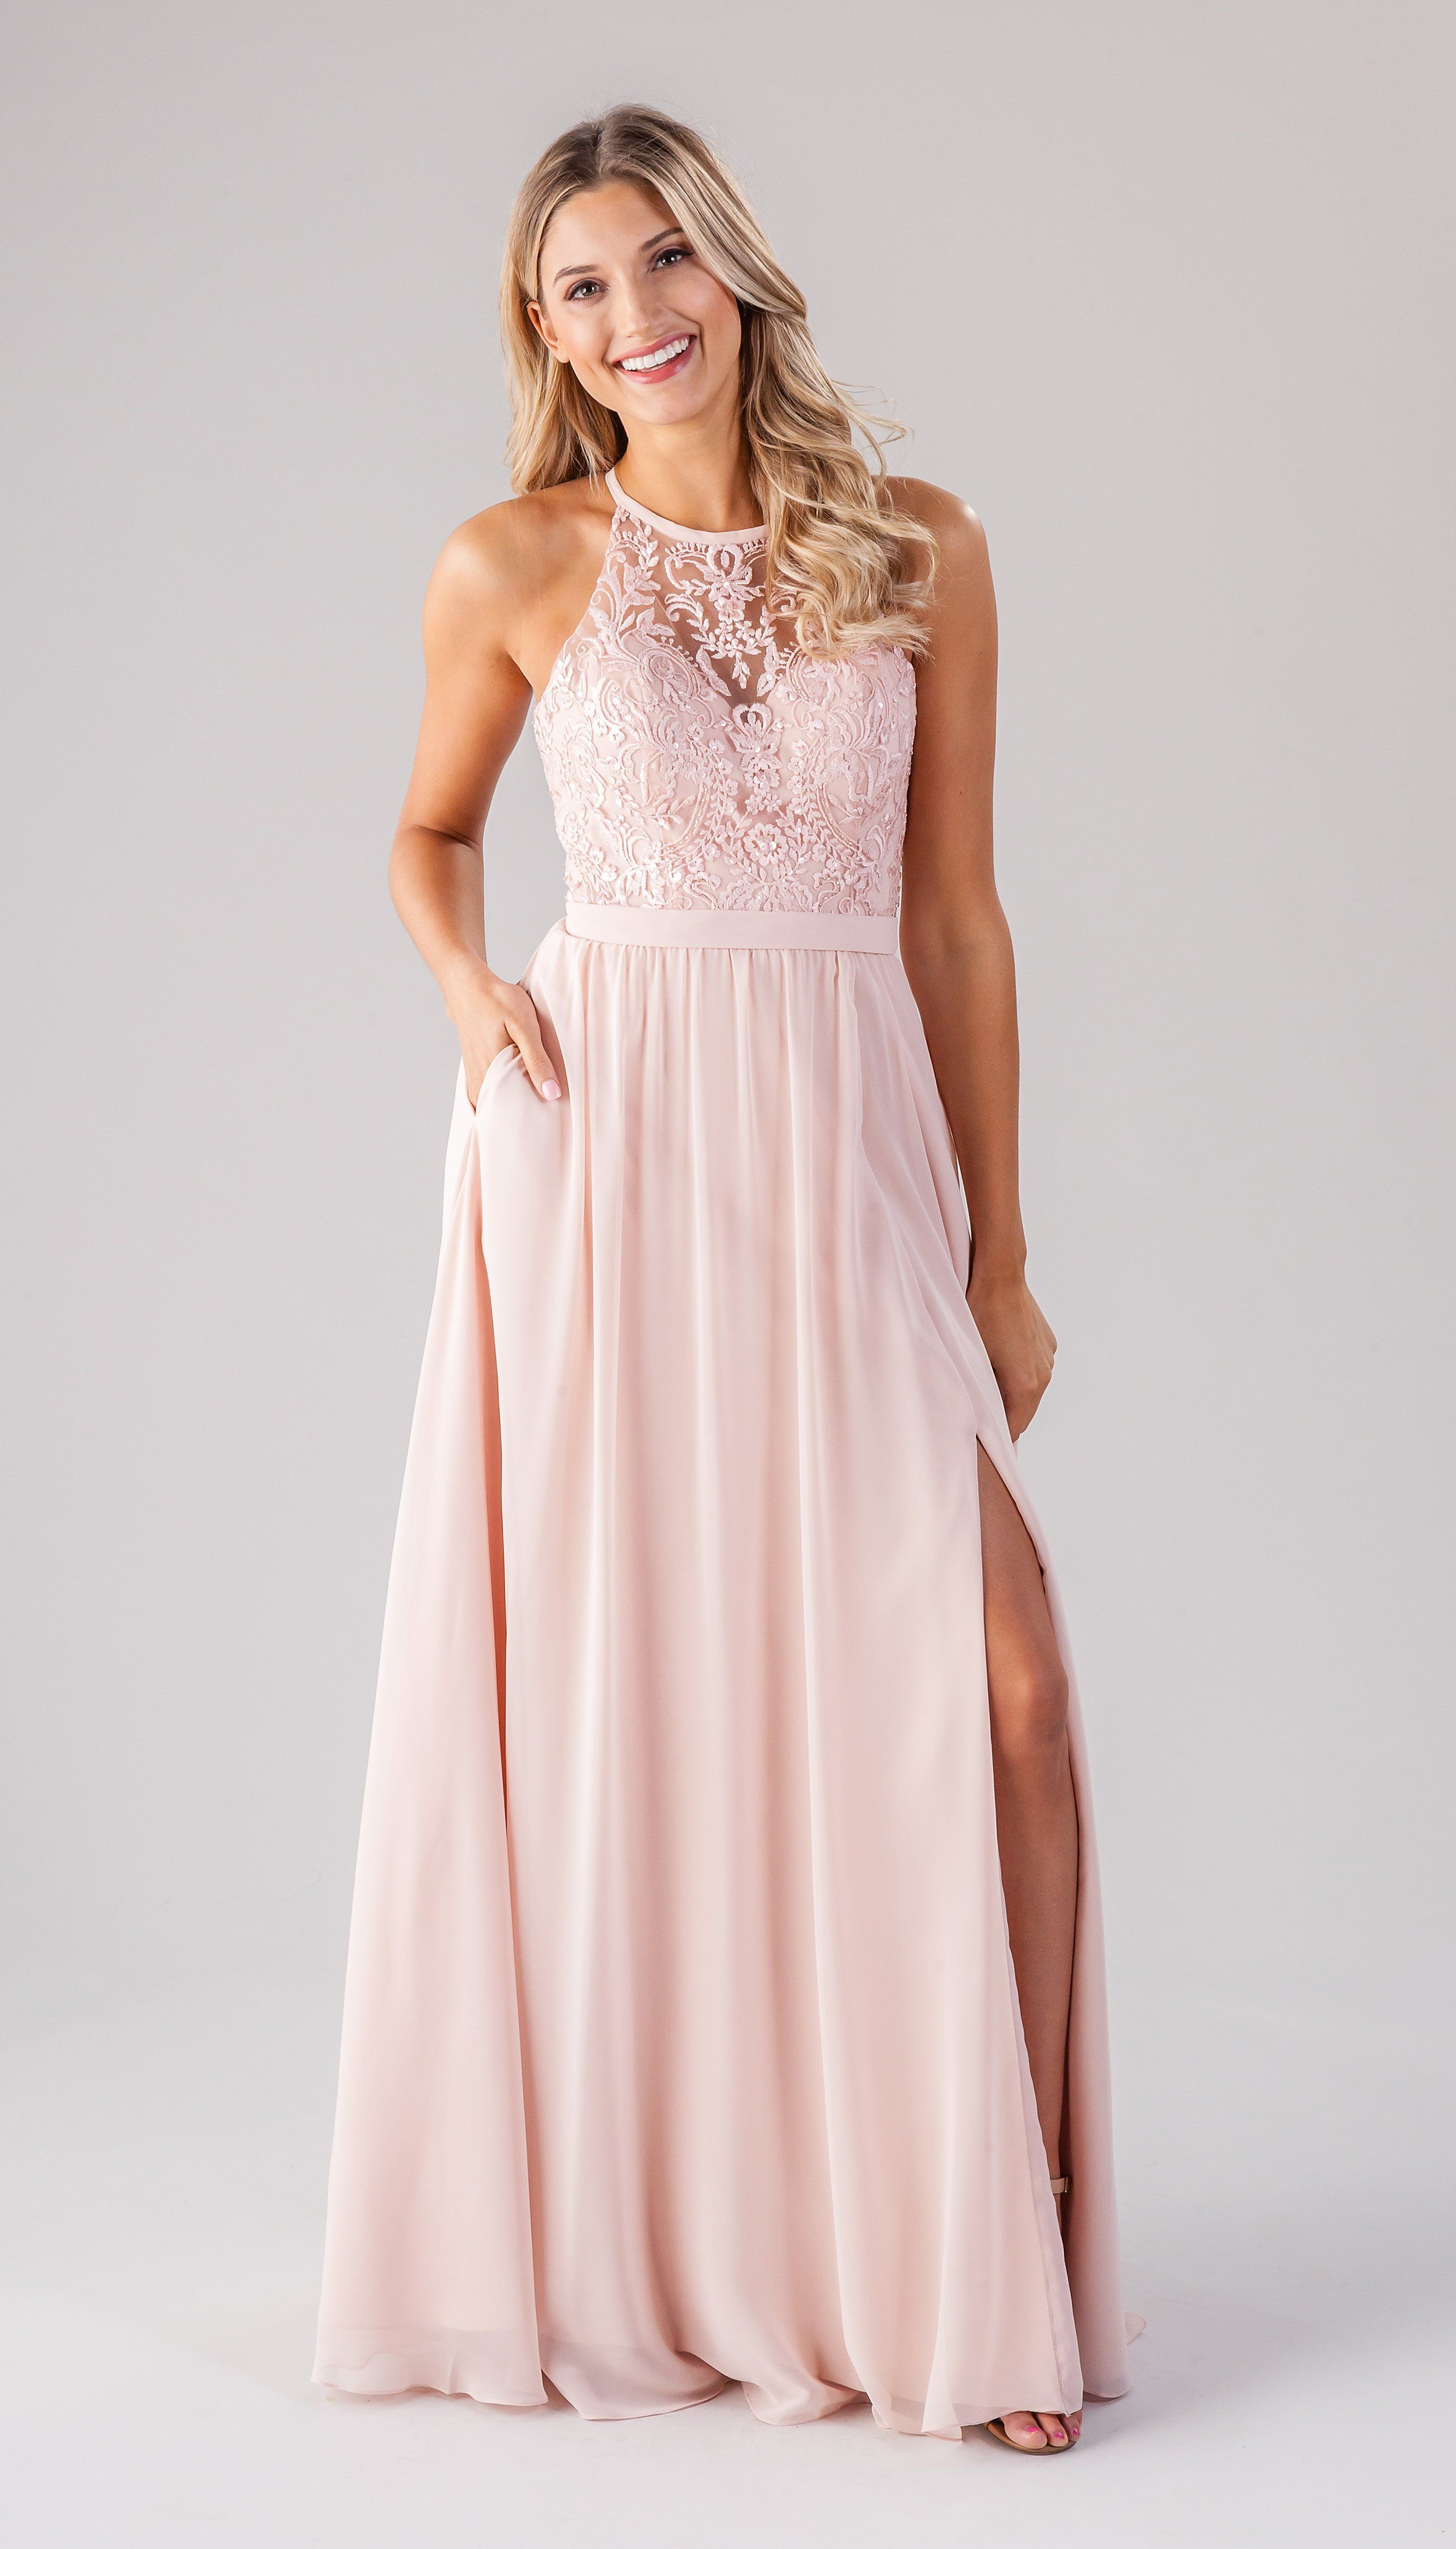 ed3a0e34cae2d Beaded And Embroidered Bridesmaids Dress With Lace Bodice And Chiffon Skirt